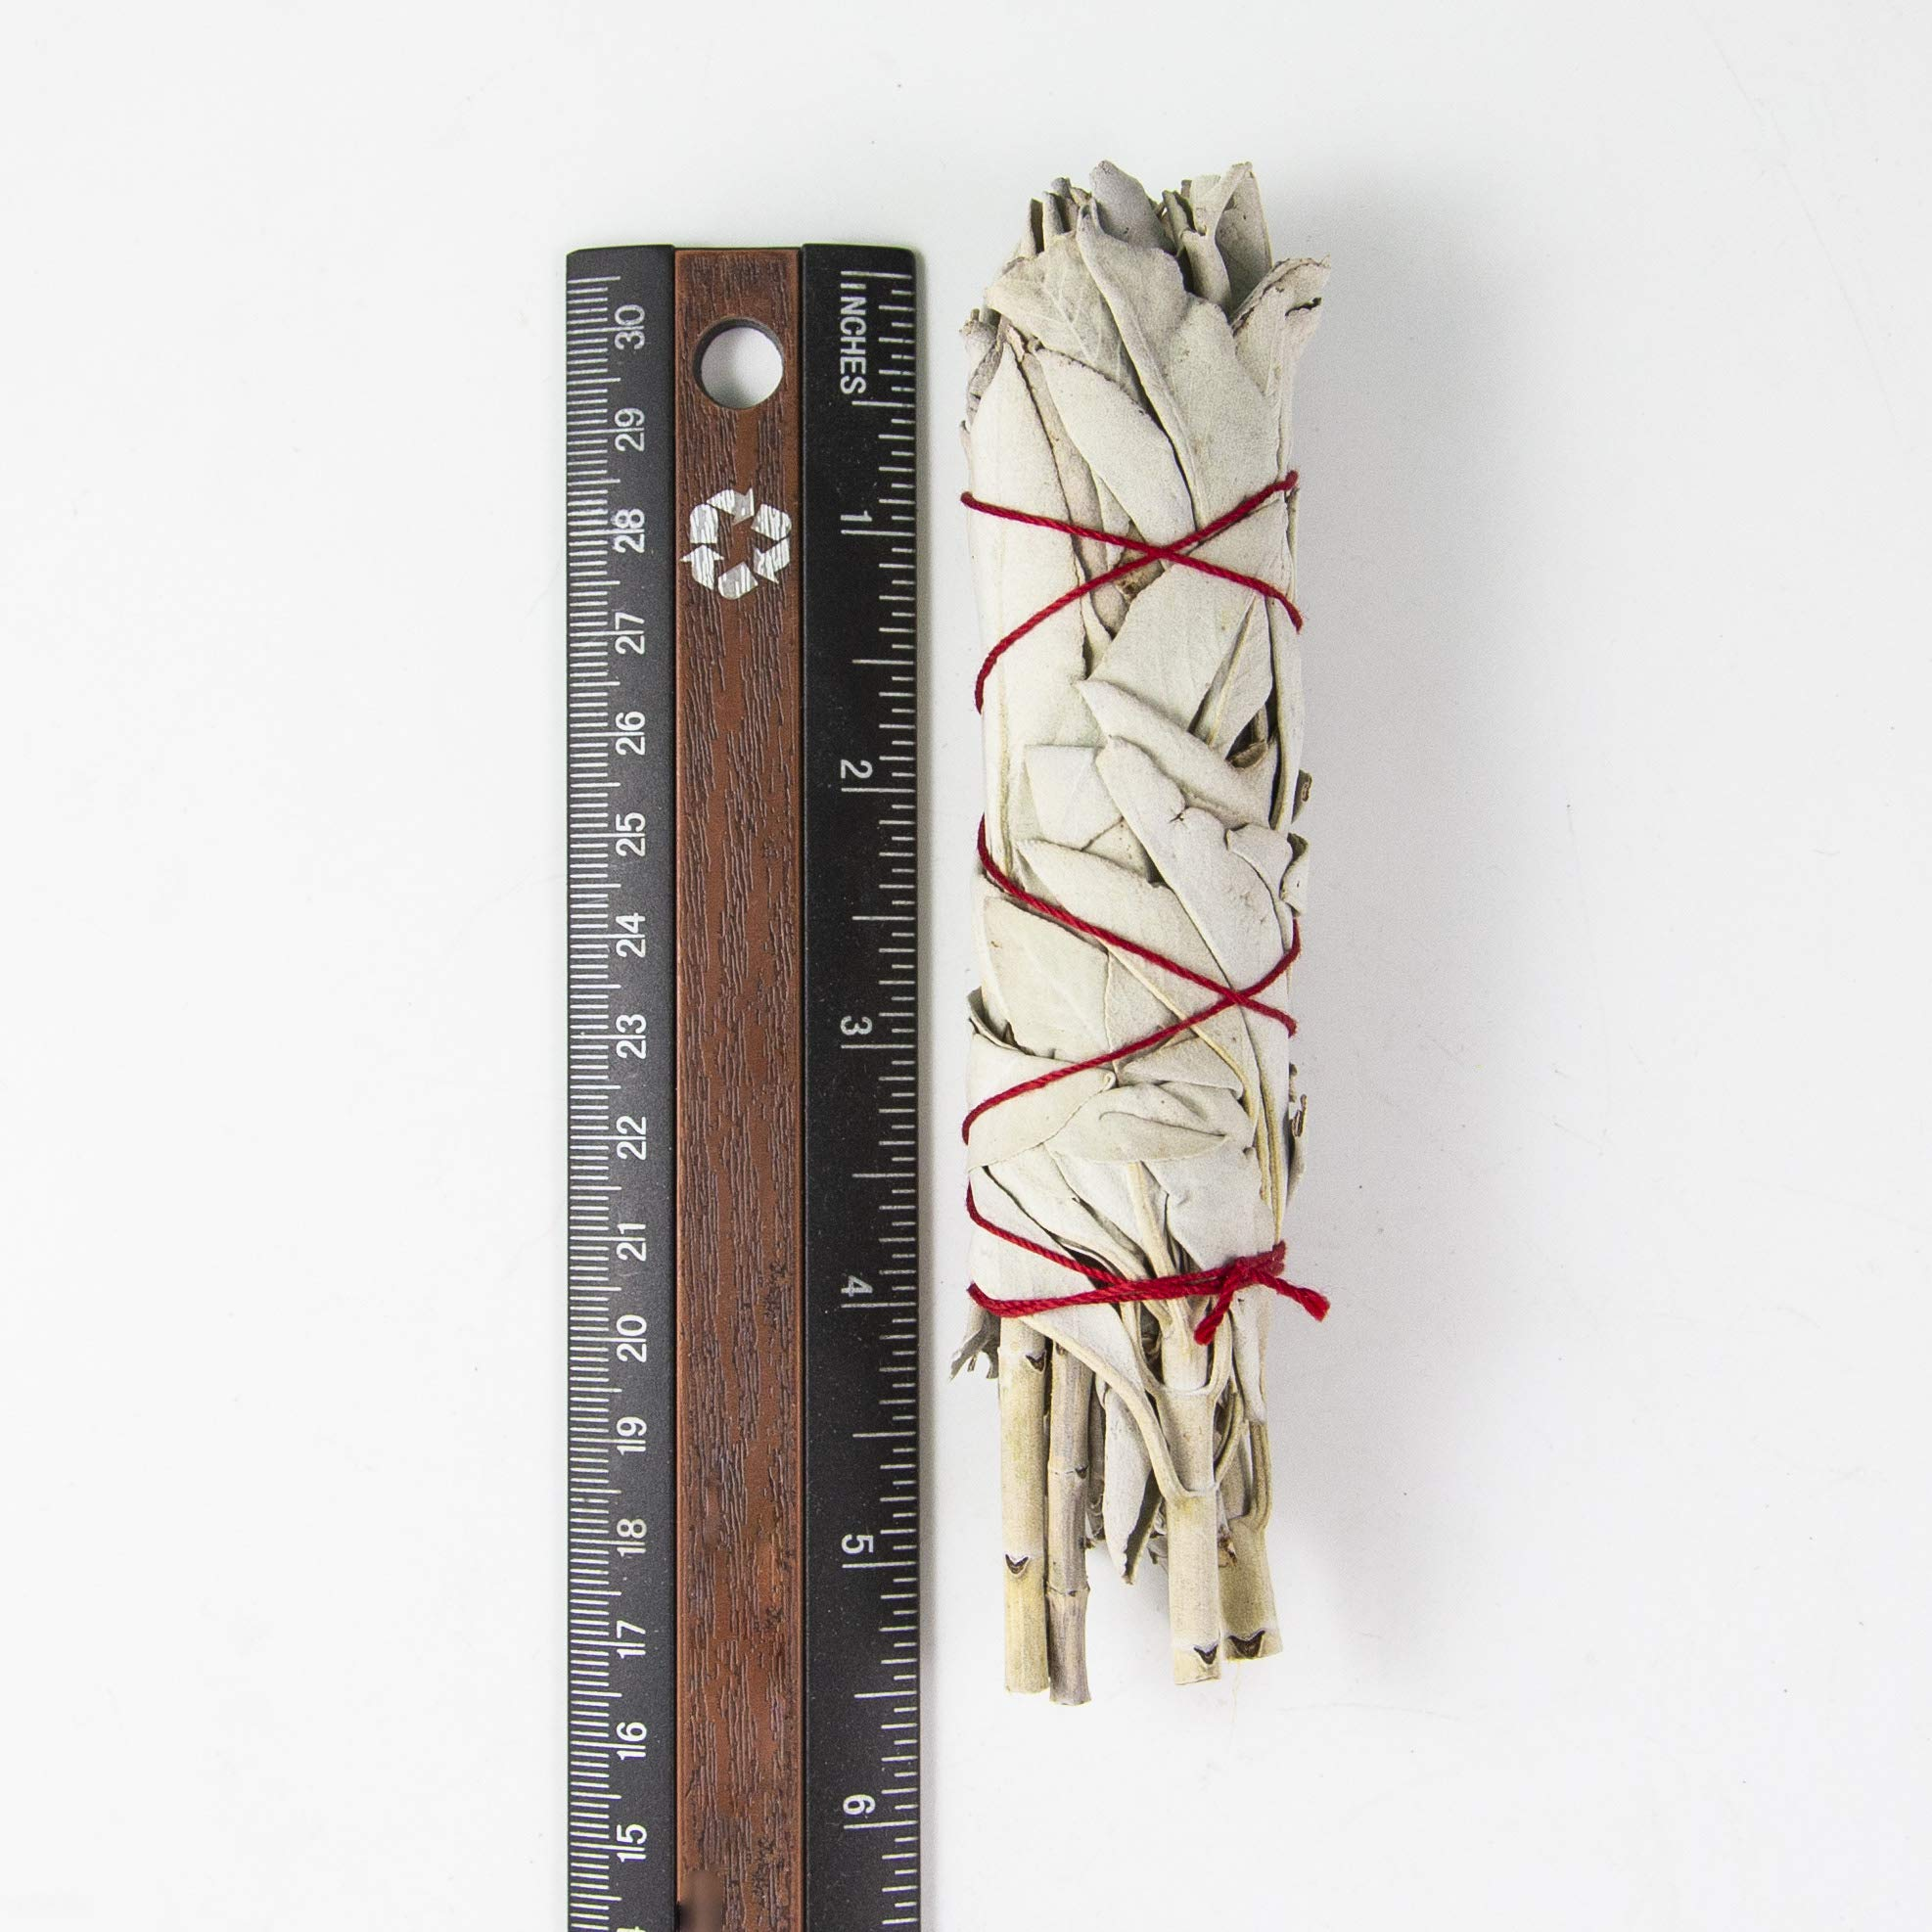 Beverly Oaks California White Sage 4'' Smudge Stick, Perfect for Smudging, Meditation, Protection and Incense, 20 Pack by Beverly Oaks (Image #3)